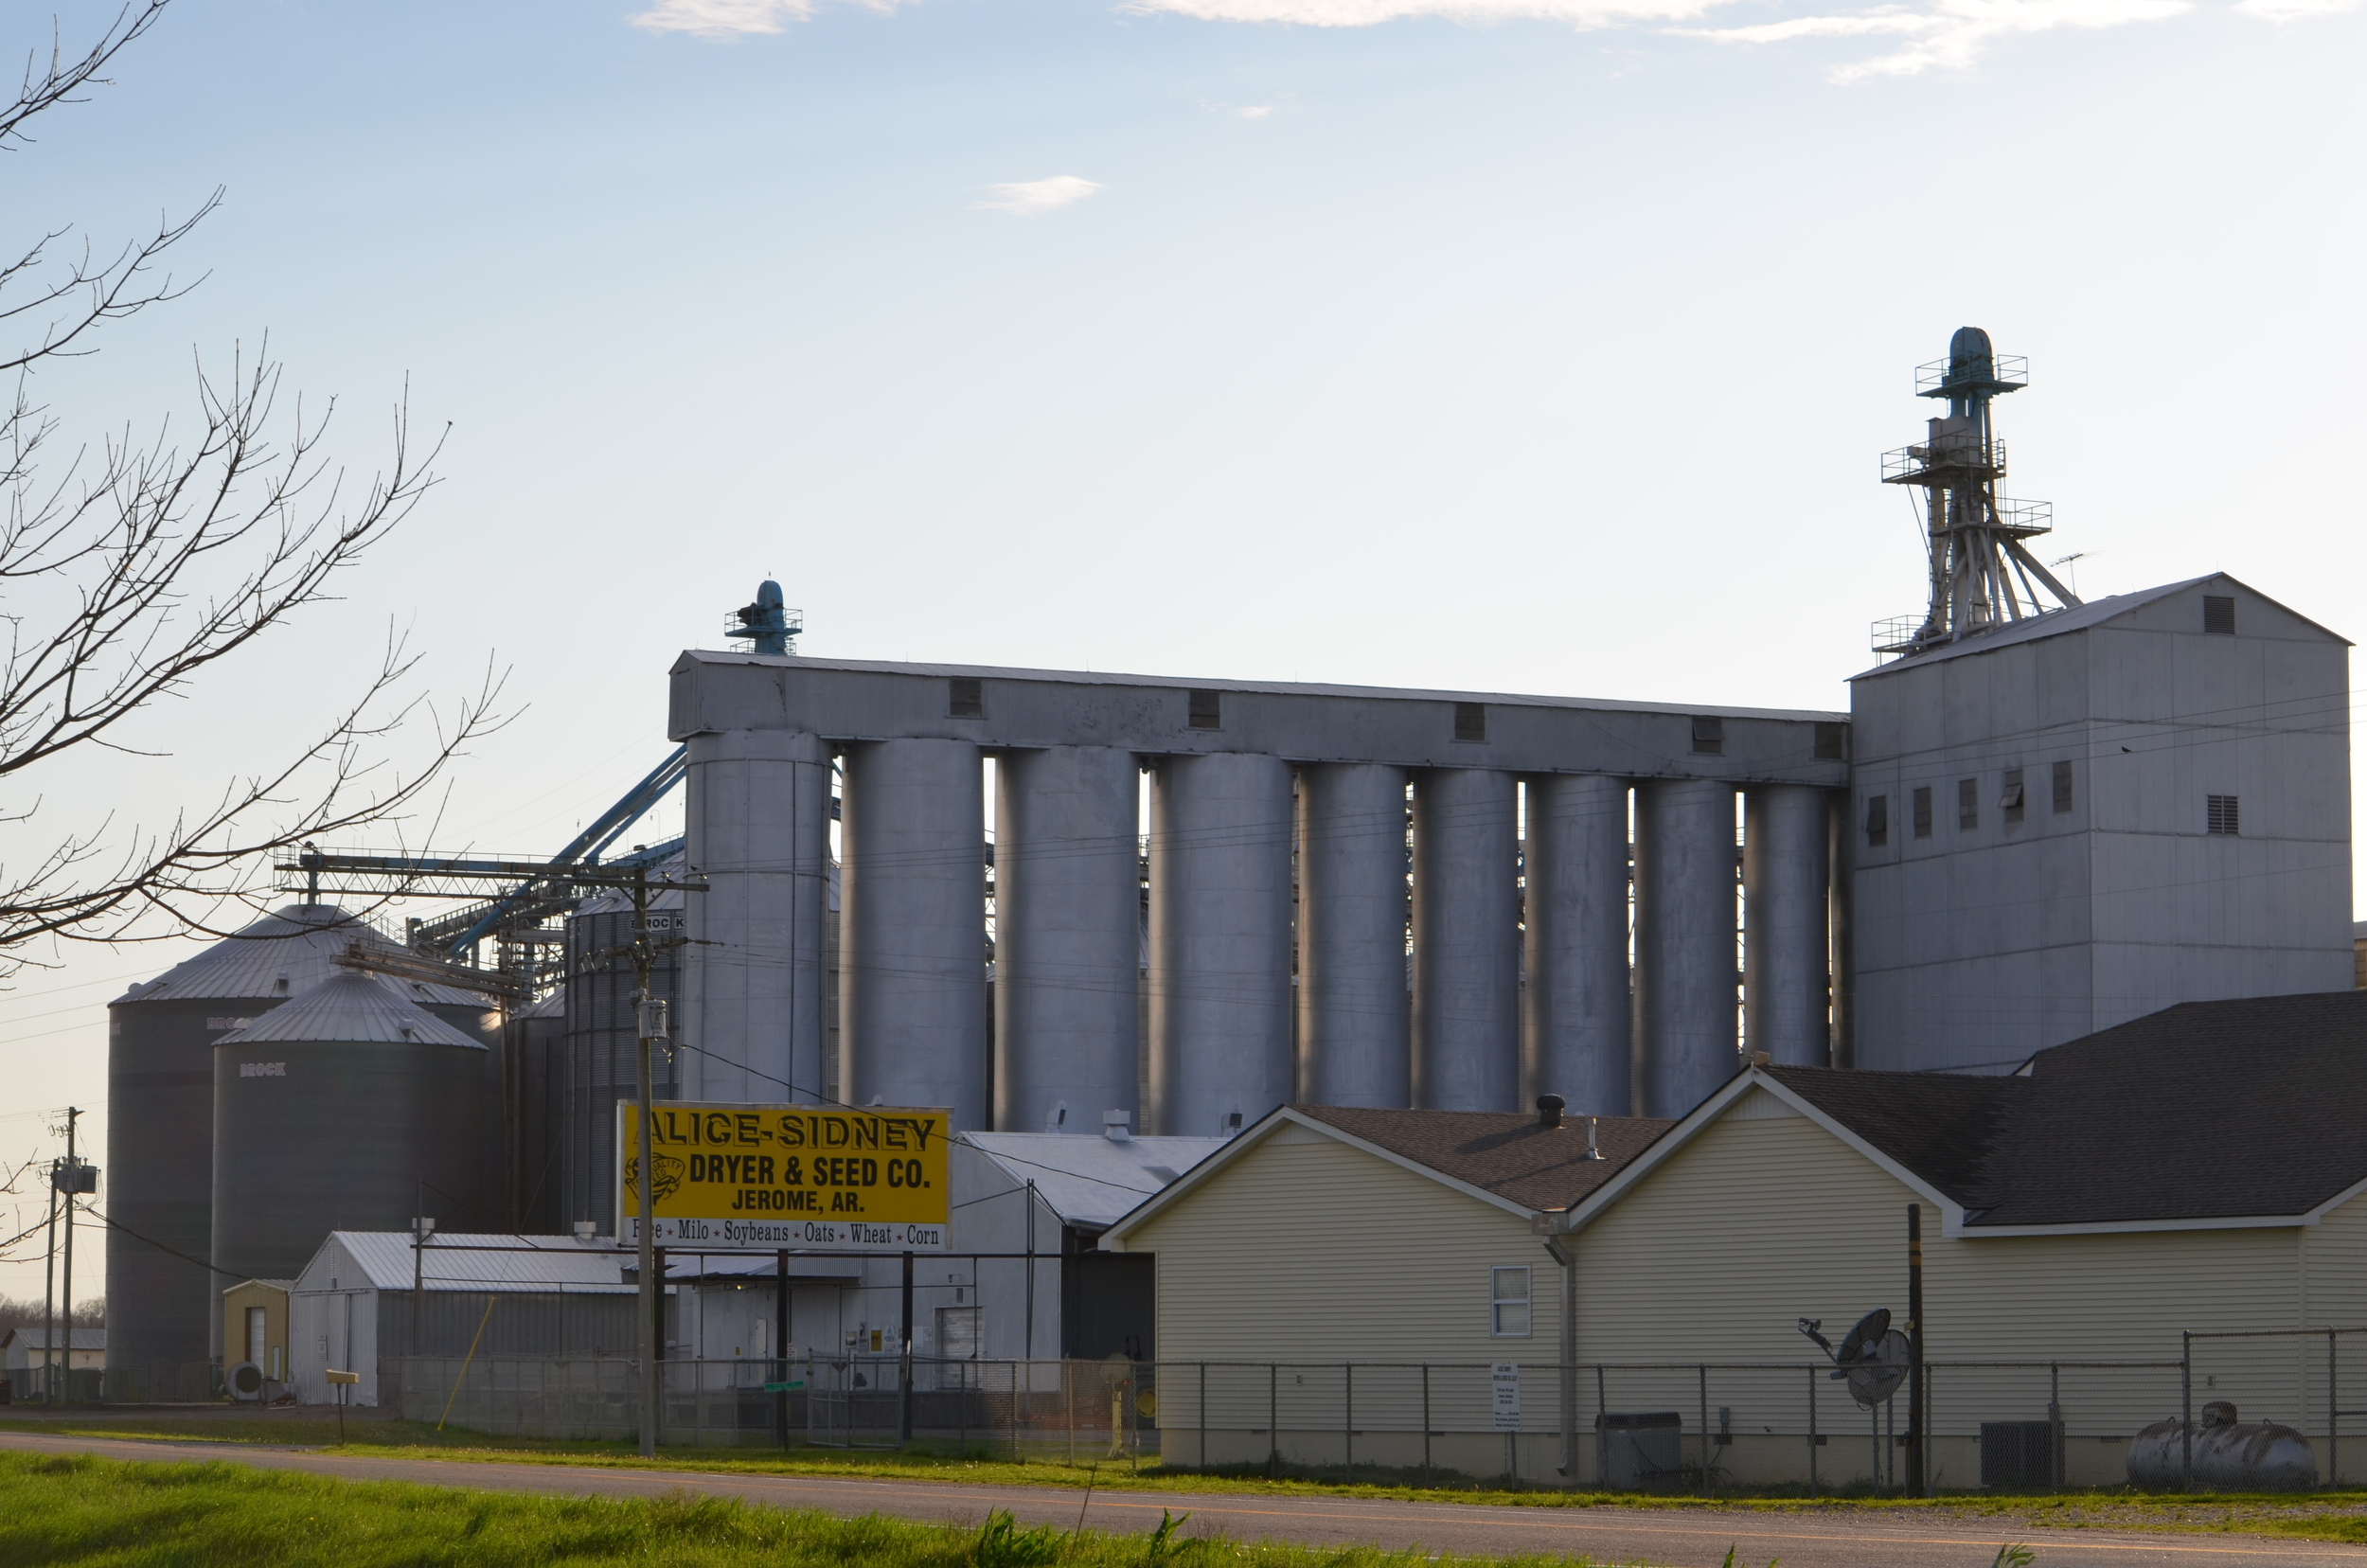 The grain dryer in our area